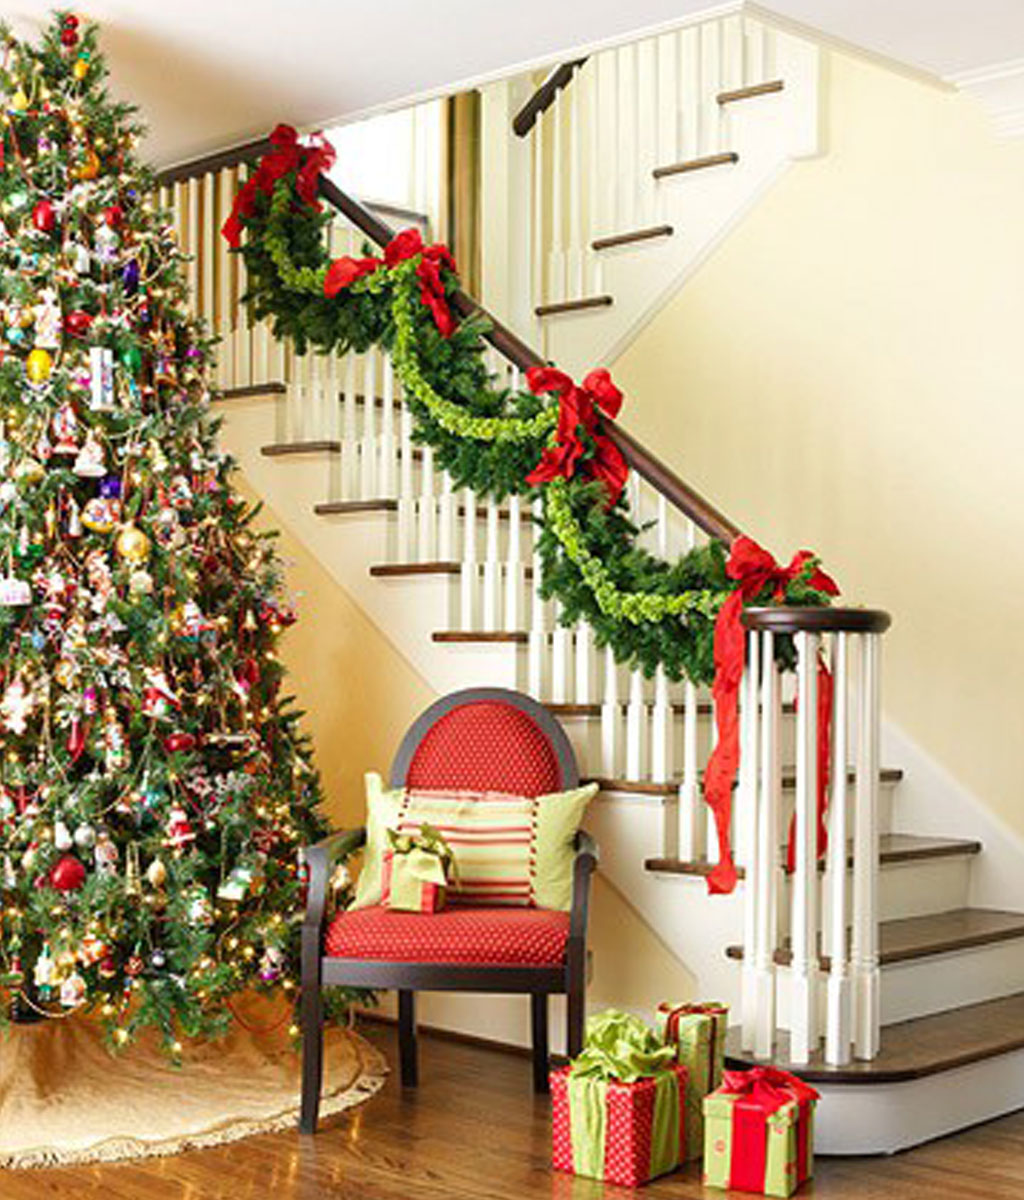 Christmas house decorations simple - 9 Cheap And Festive Christmas Decor Ideas For Your Home